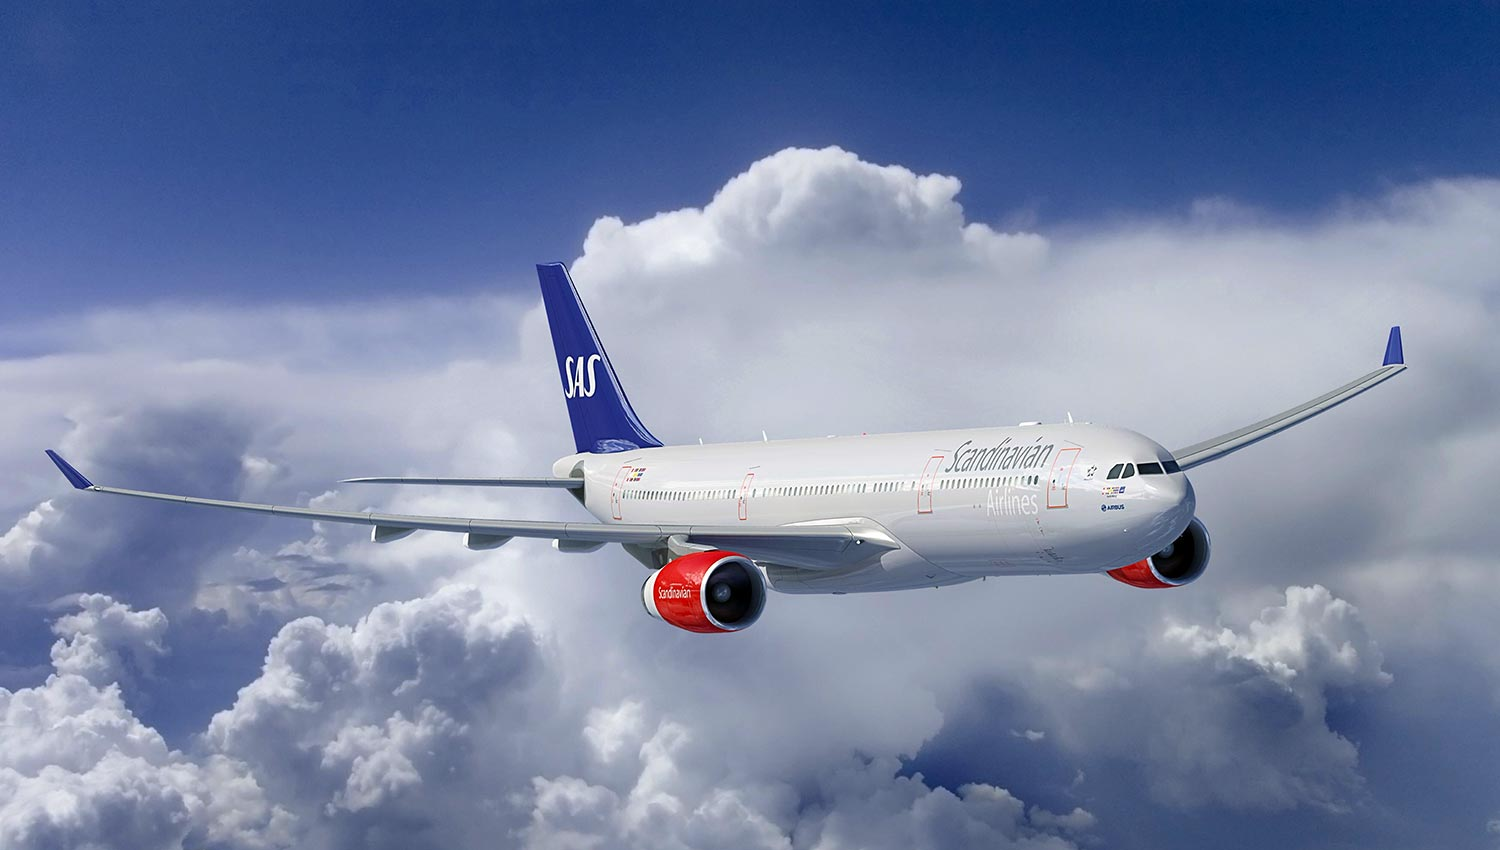 Sas To Fly Direct From Stockholm To Miami From October Sas